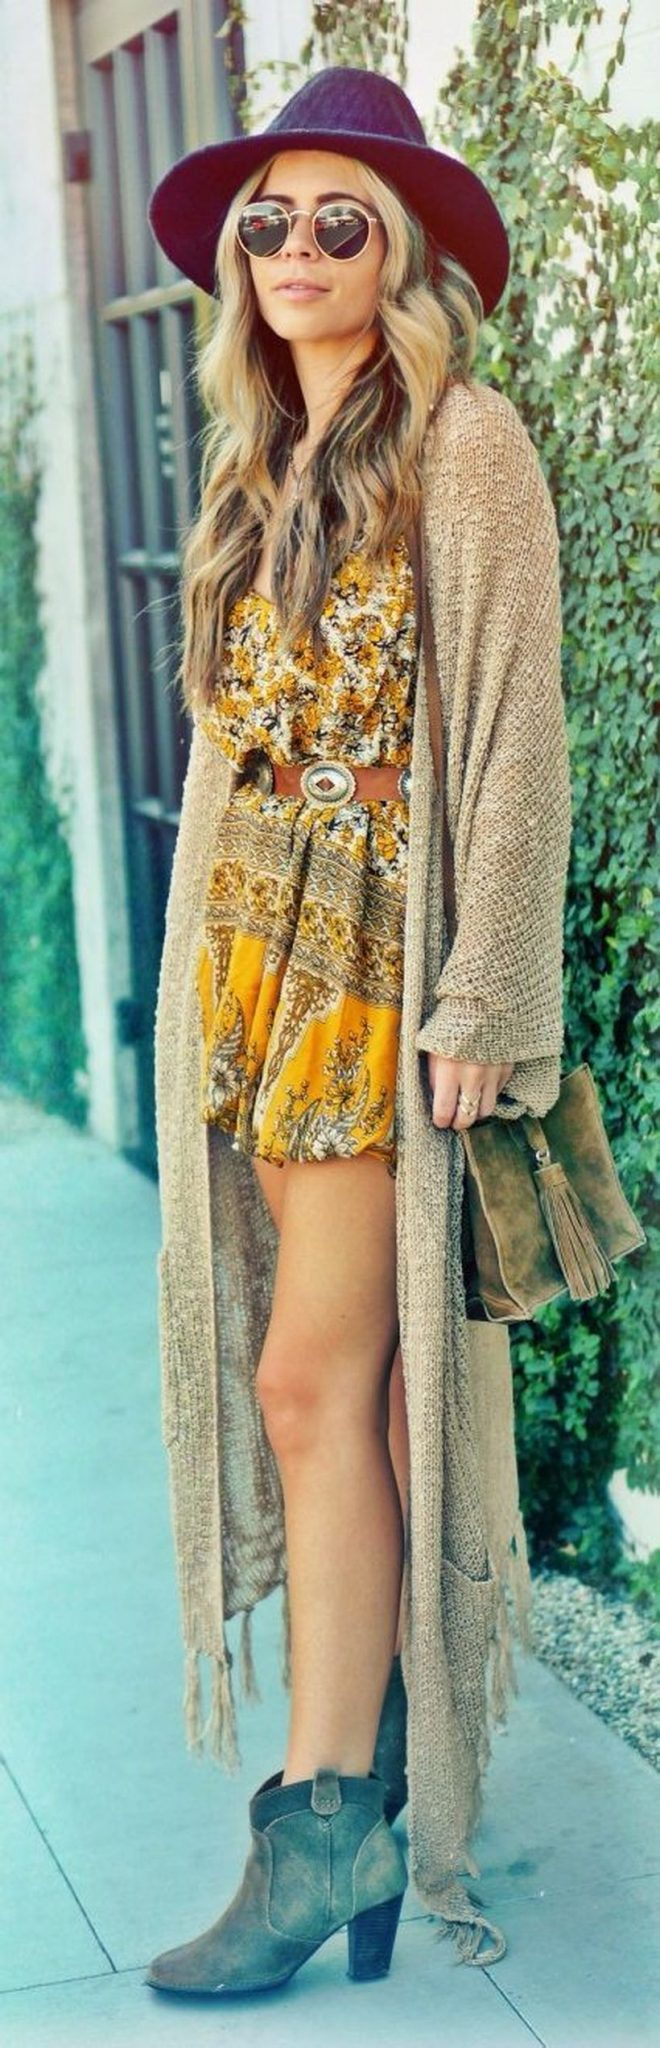 Stylish bohemian boho chic outfits style ideas 112